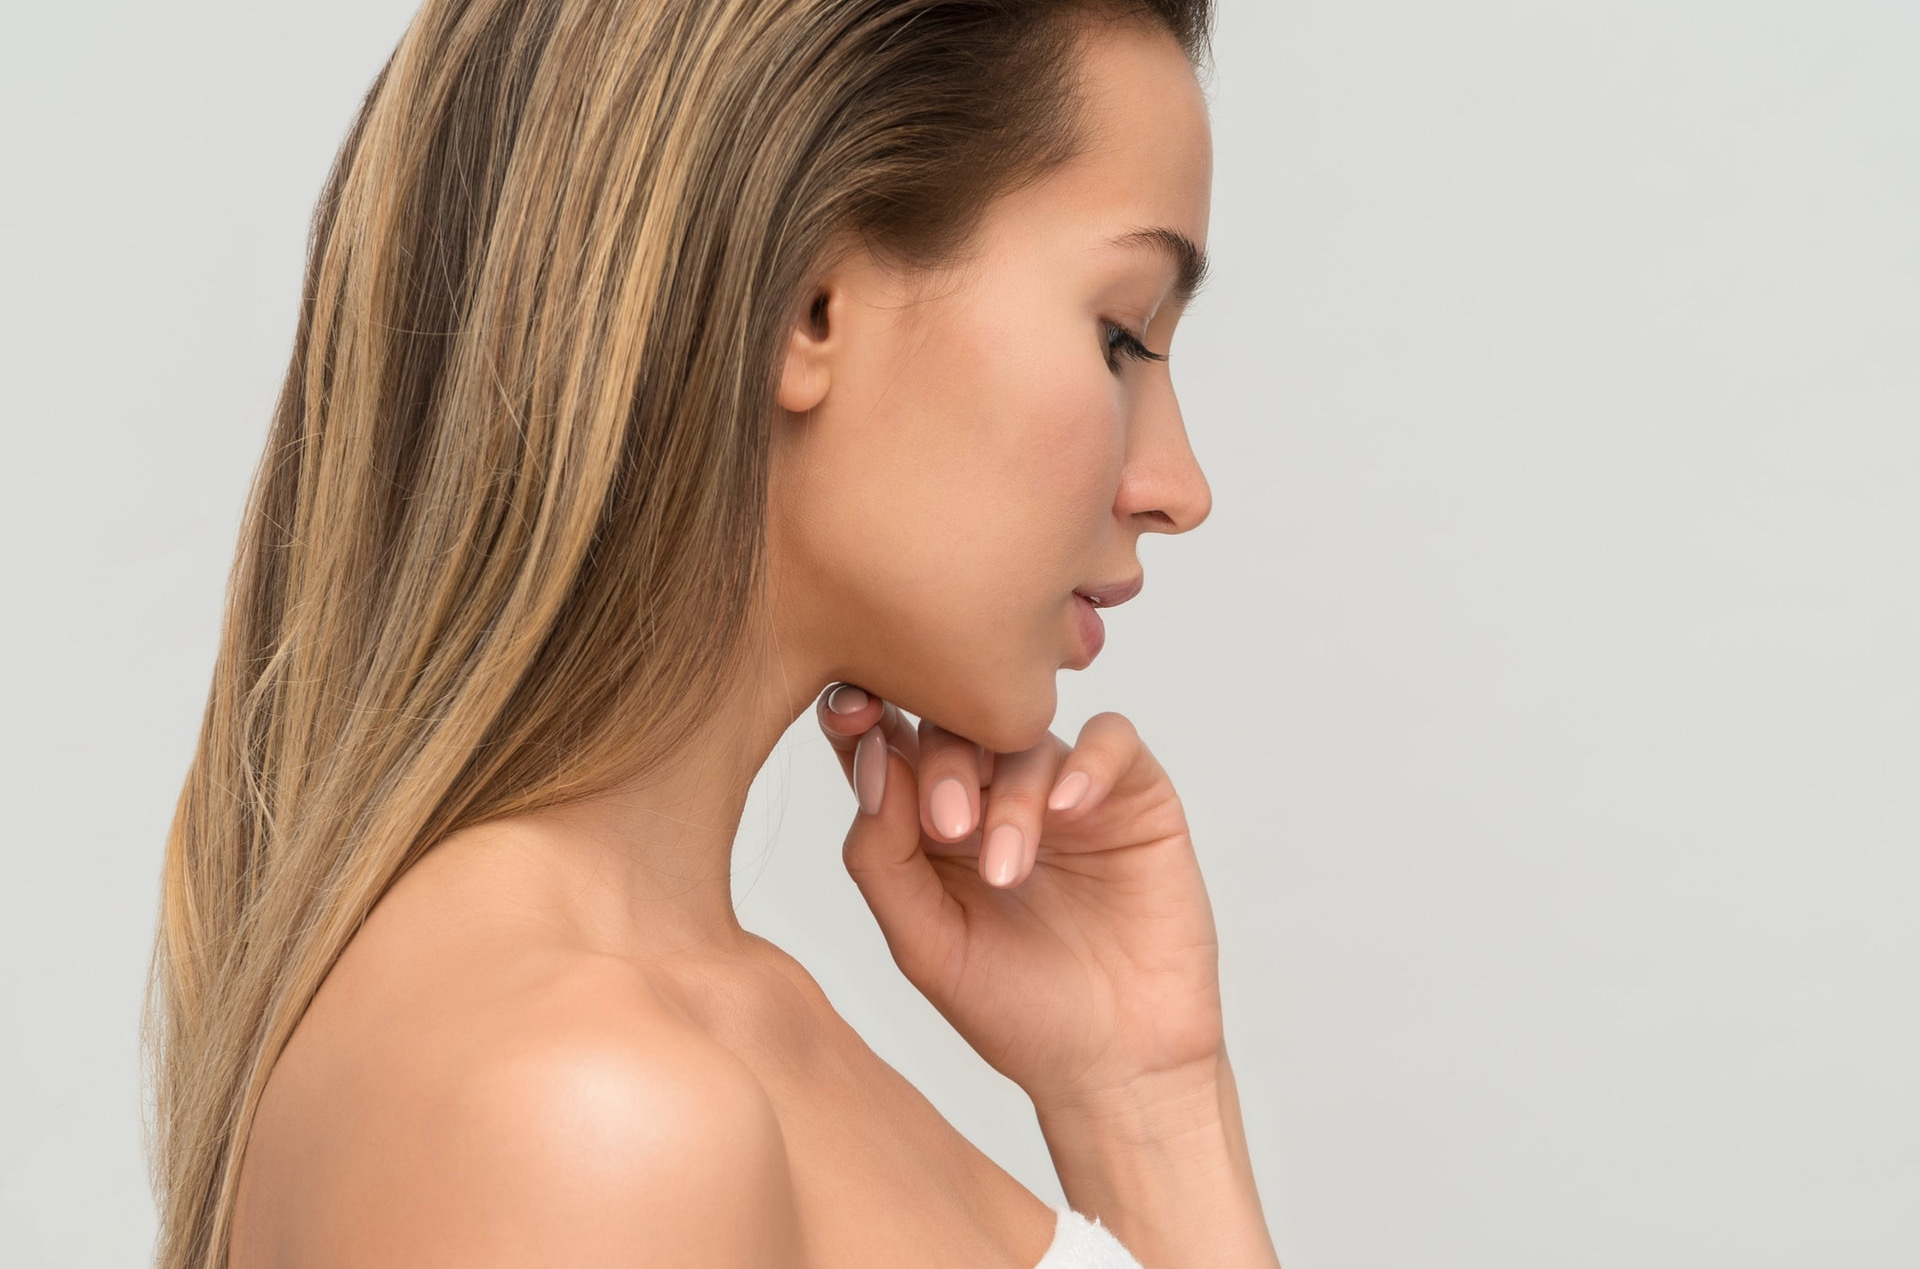 Person Looking Thoughtful, Hand On Chin, Ready For Night Time Skincare Routine